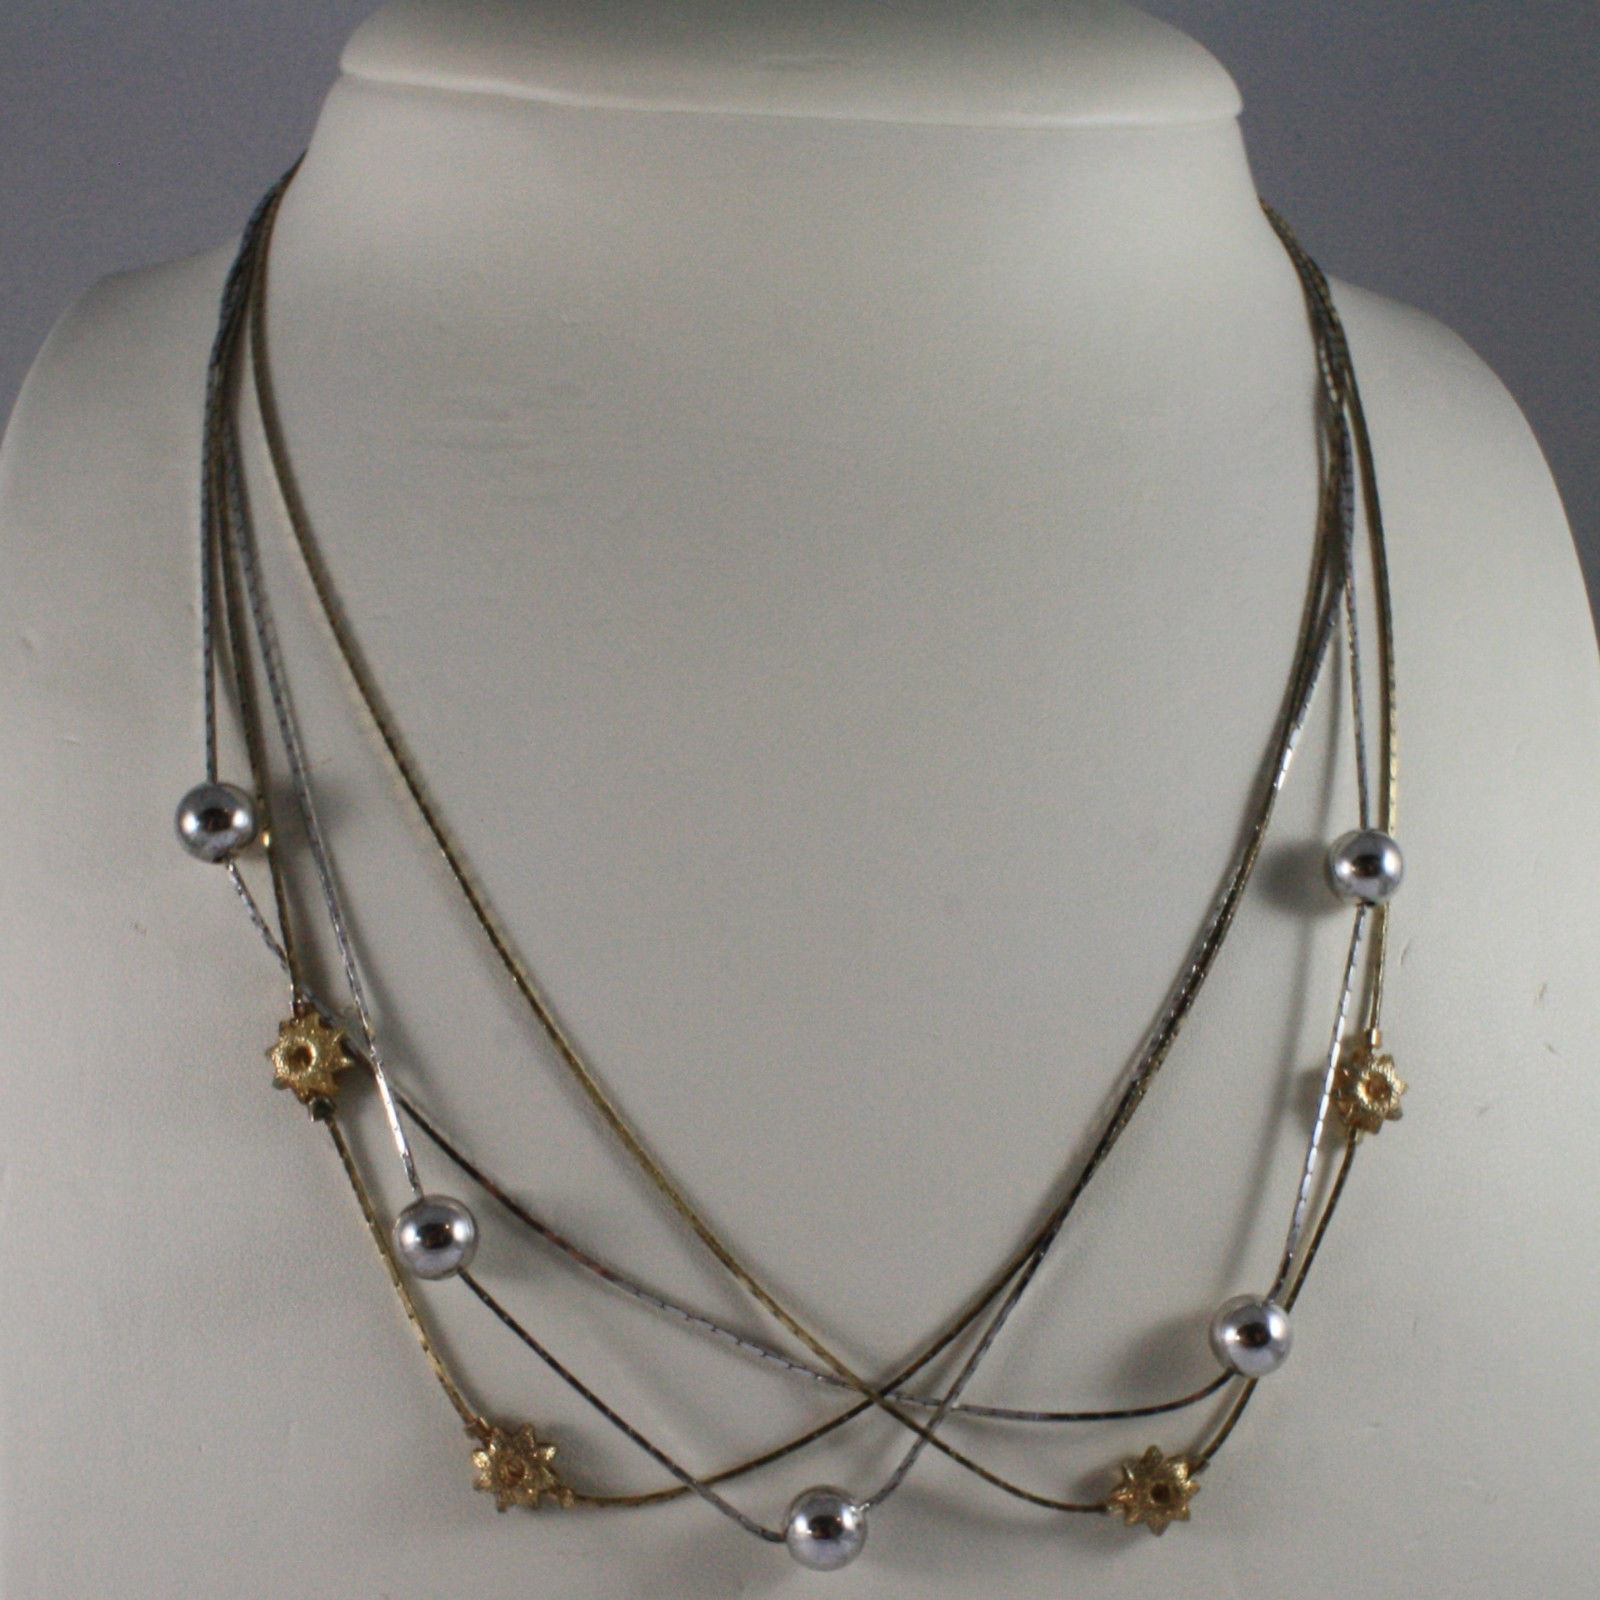 .925 SILVER RHODIUM AND YELLOW GOLD PLATED NECKLACE WITH SPHERES AND SUN